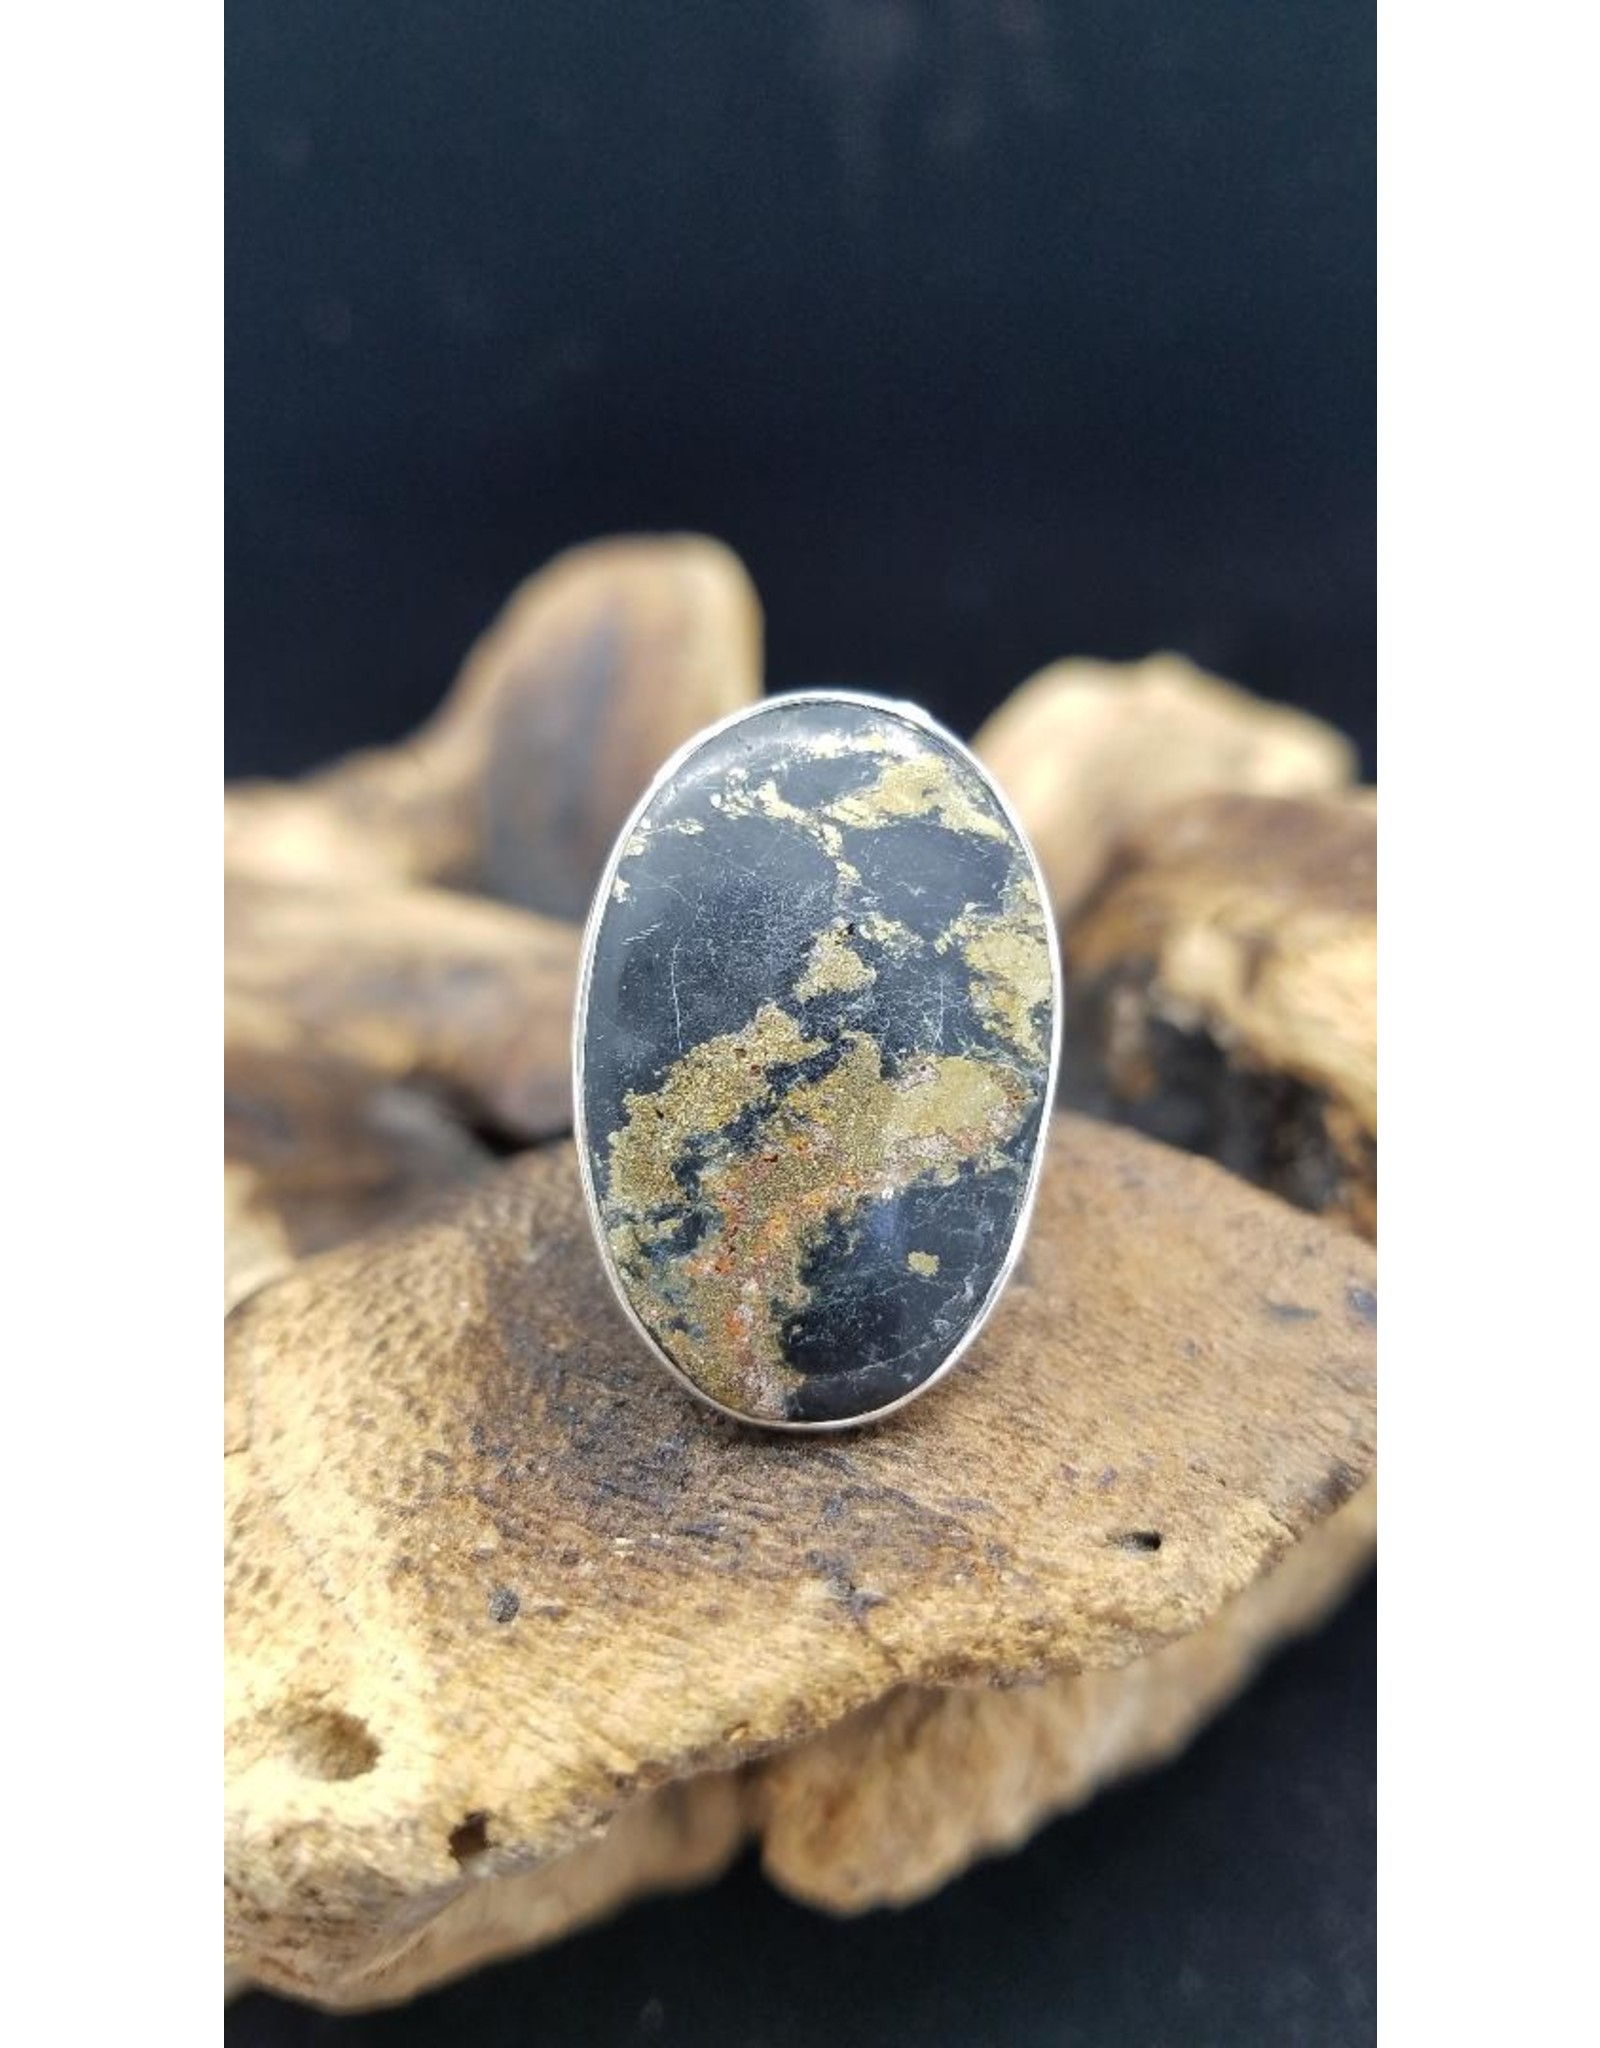 Apachi Gold Oval Ring 1 - Adjustable